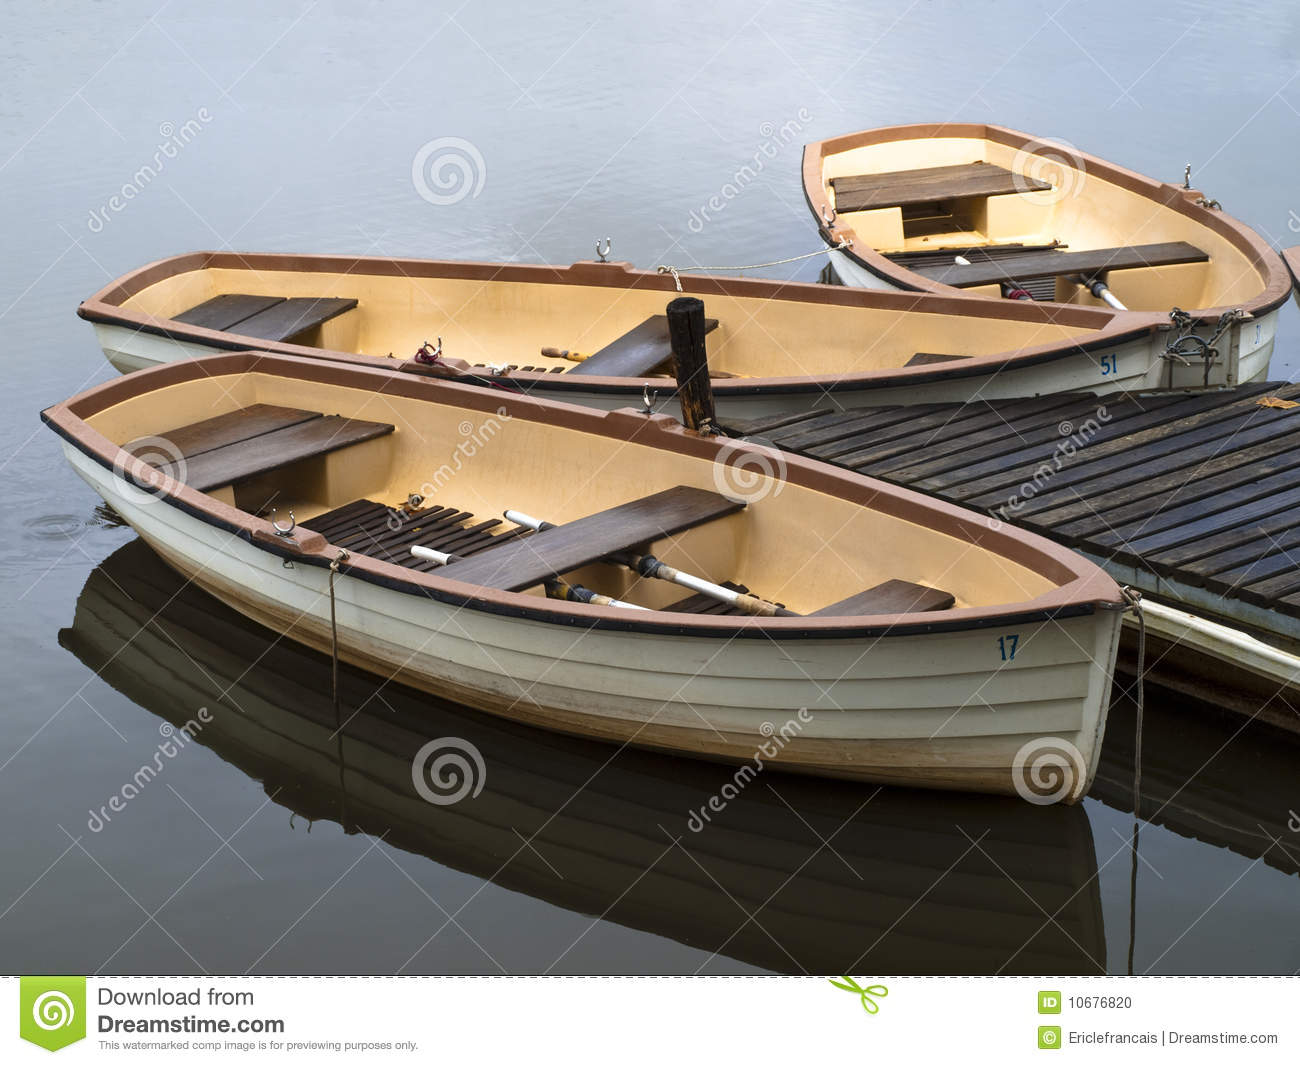 Small boats stock photo. Image of white, castel, nautic - 10676820